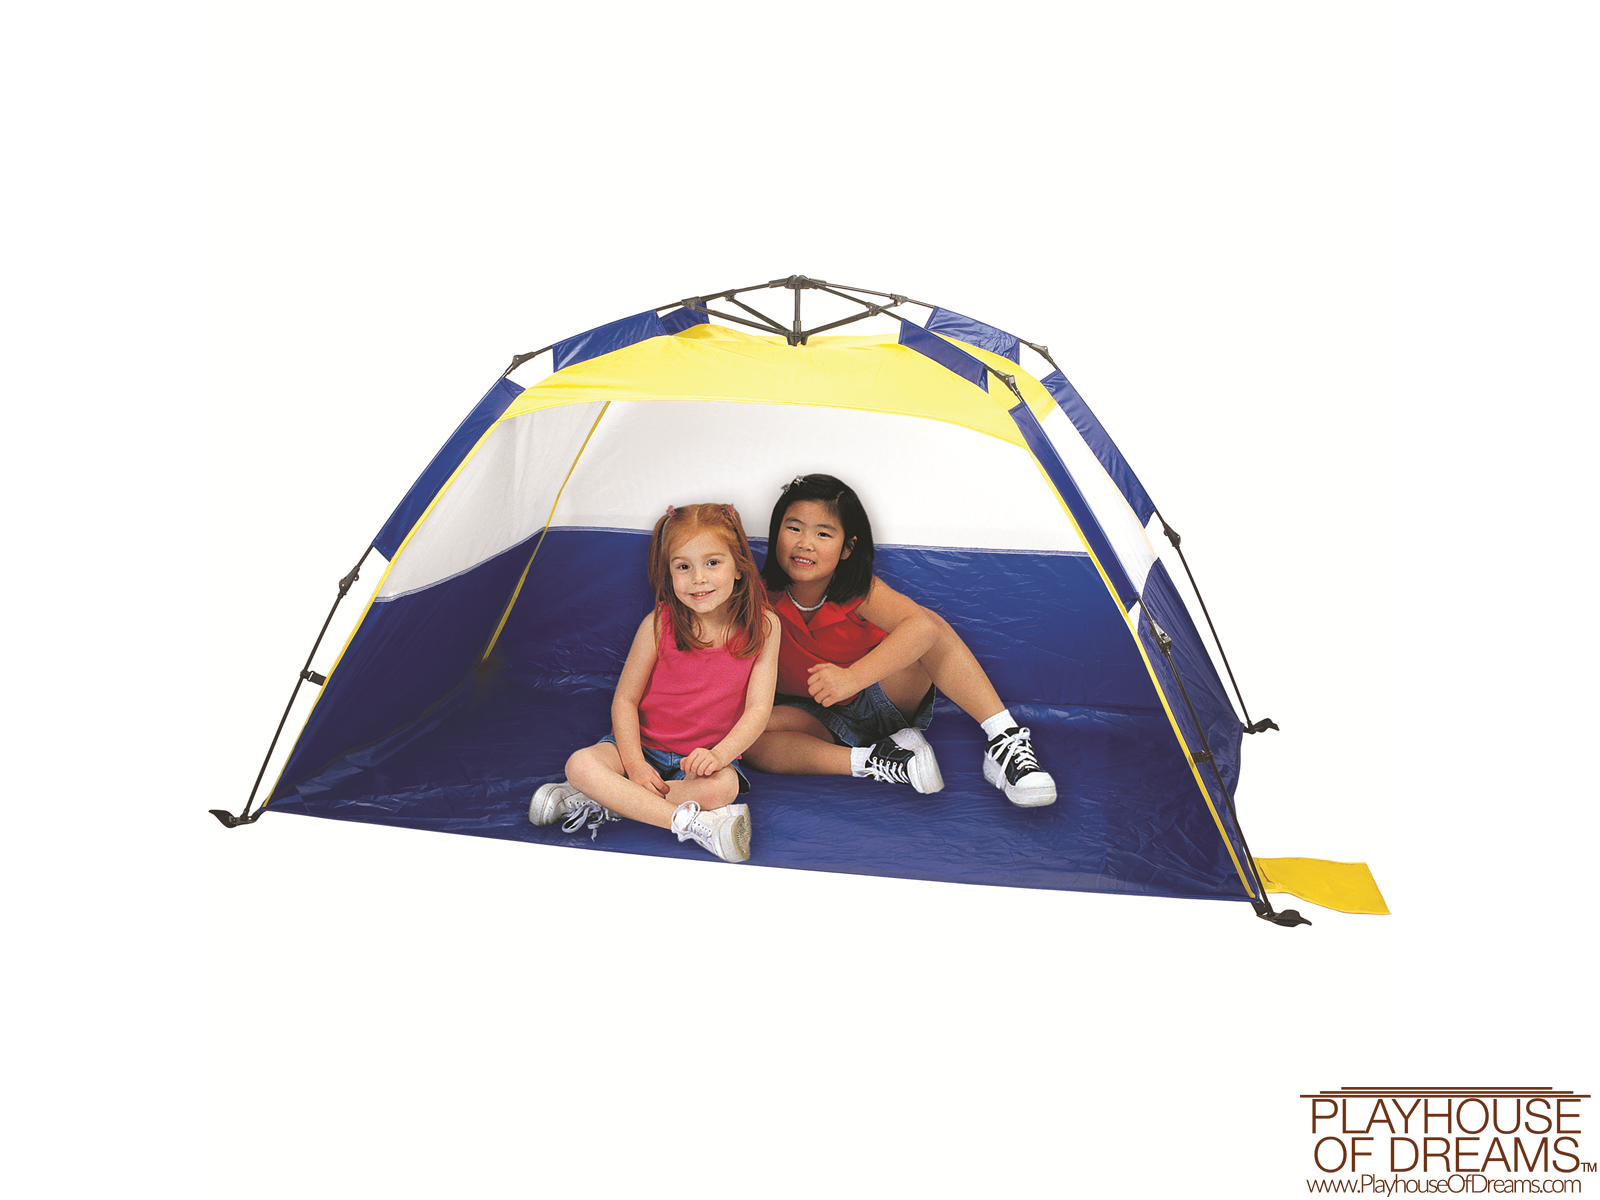 One Touch® Cabana - Pacific Play Tent - Playhouse of Dreams - 1 ...  sc 1 st  Playhouse of Dreams & One Touch® Cabana - Buy Online - Pacific Play Tent - Playhouse of ...